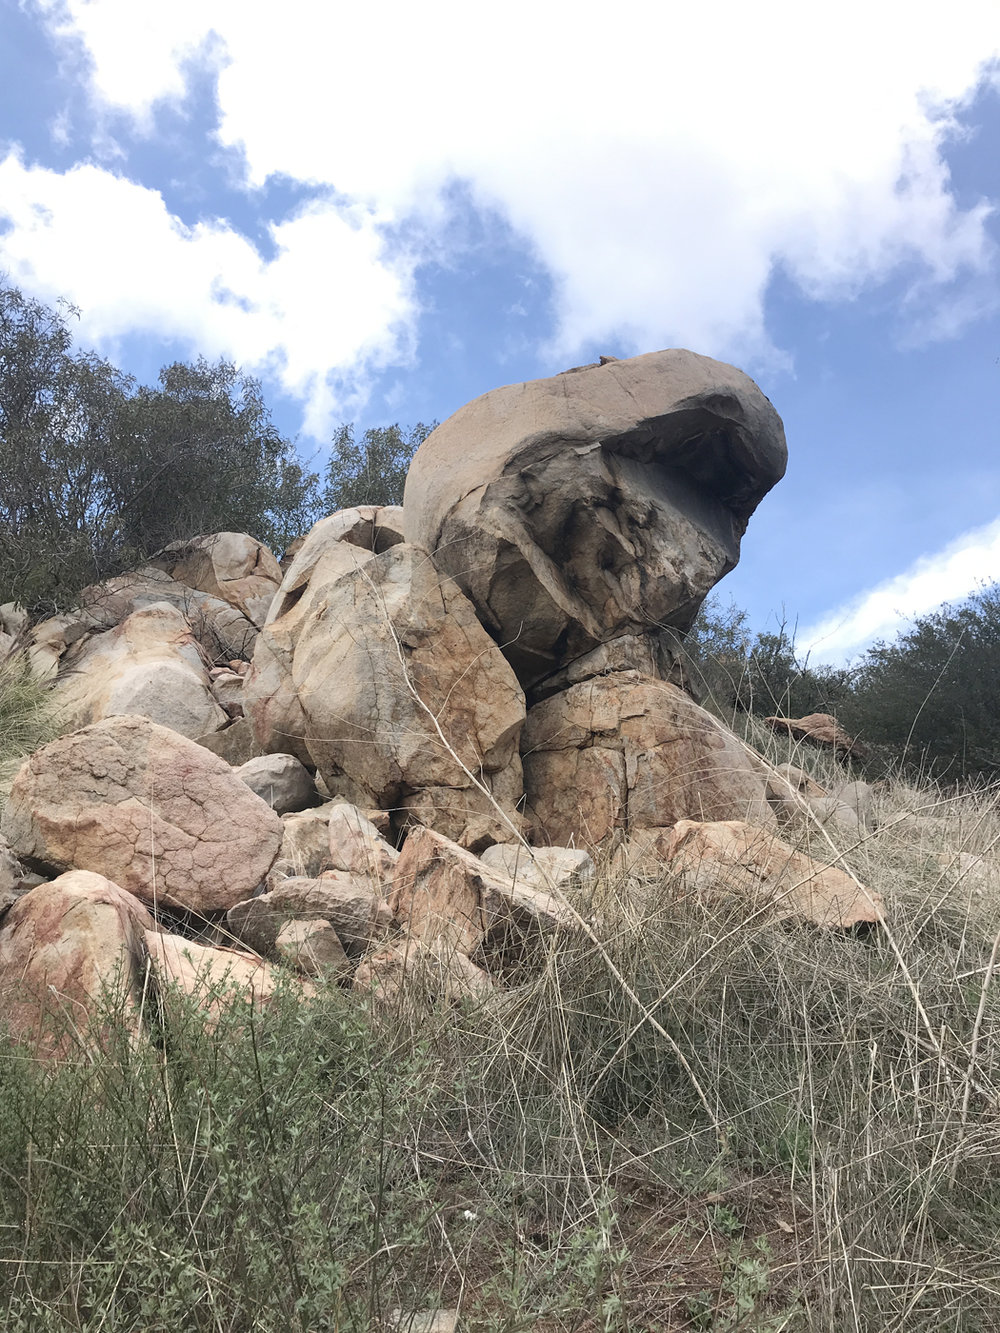 Impressive rock formations may be found throughout the preserve.